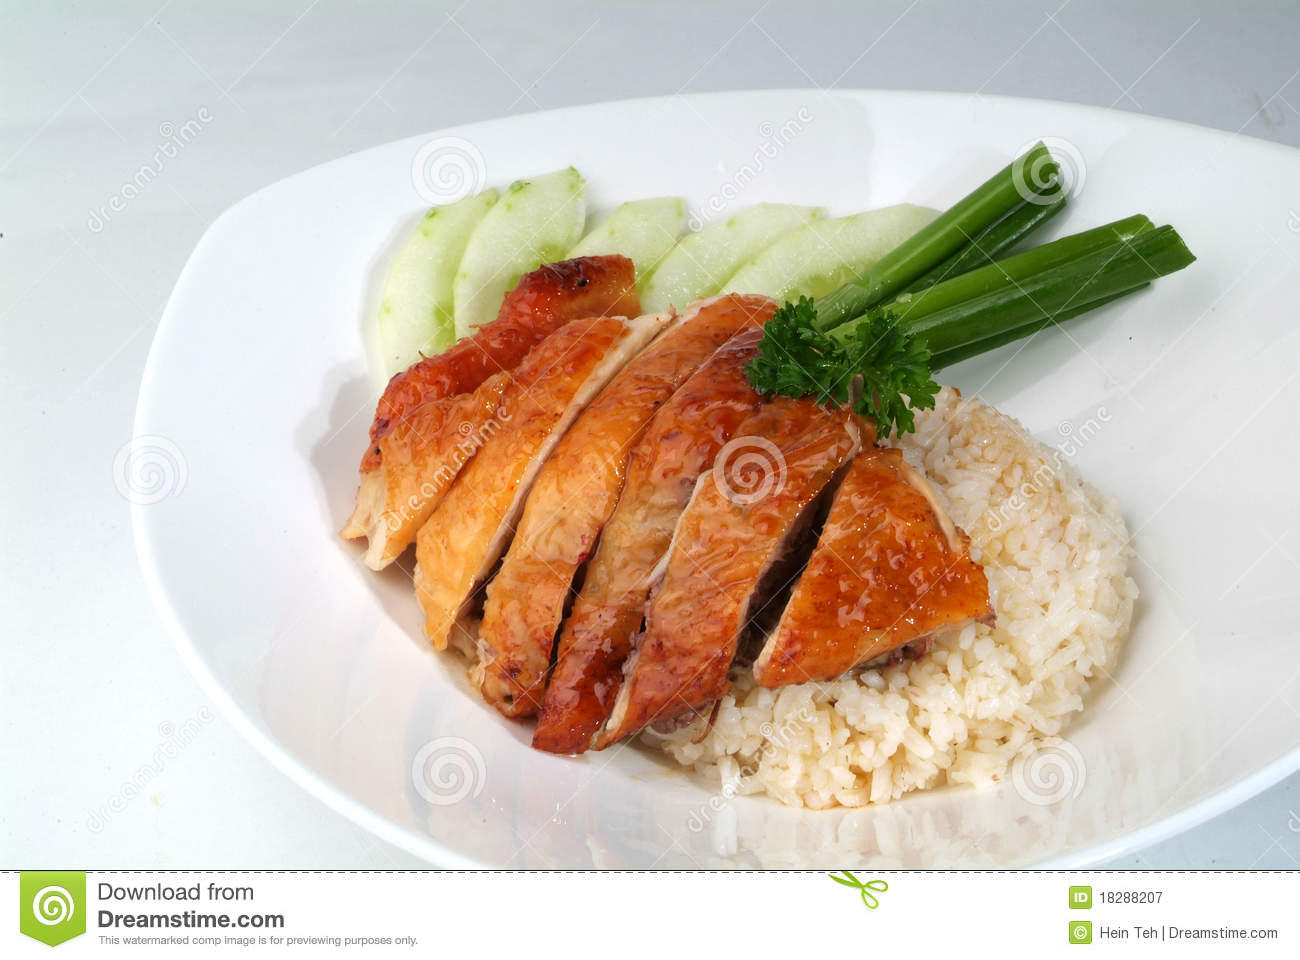 chicken rice royalty free stock photography image 18288207 clip art shaking hands gif clipart shake hands